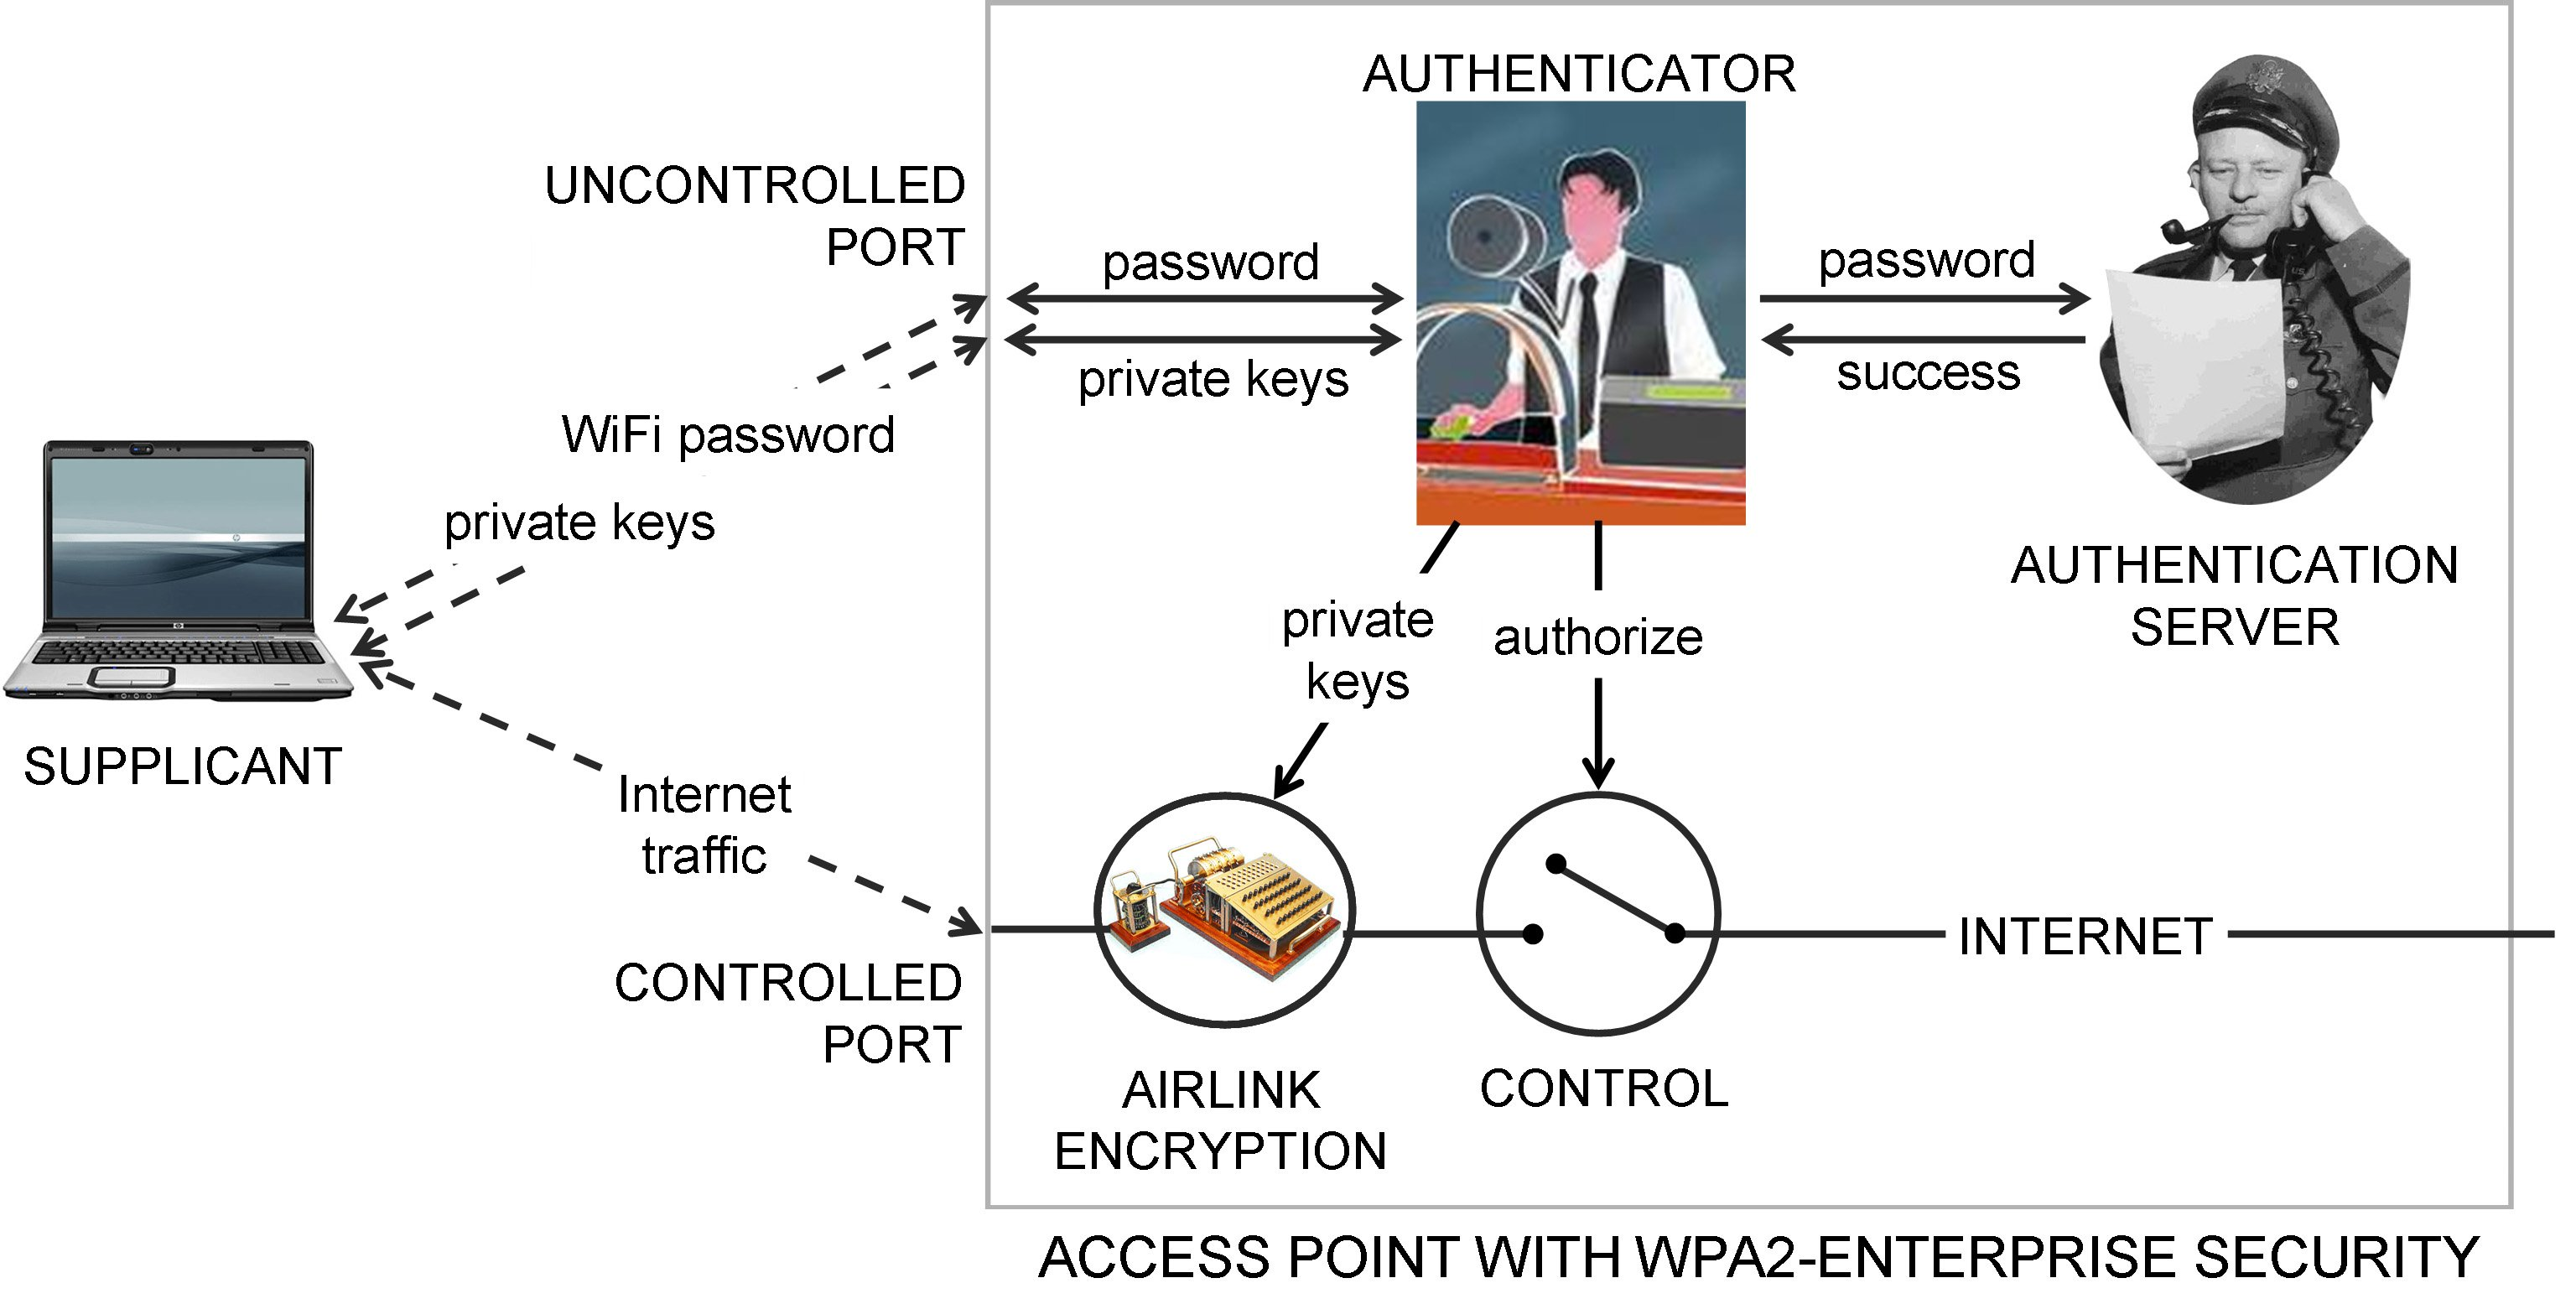 tutorial wpa2 802.11i wifi security 802.1X supplicant authorizer authentication server RADIUS